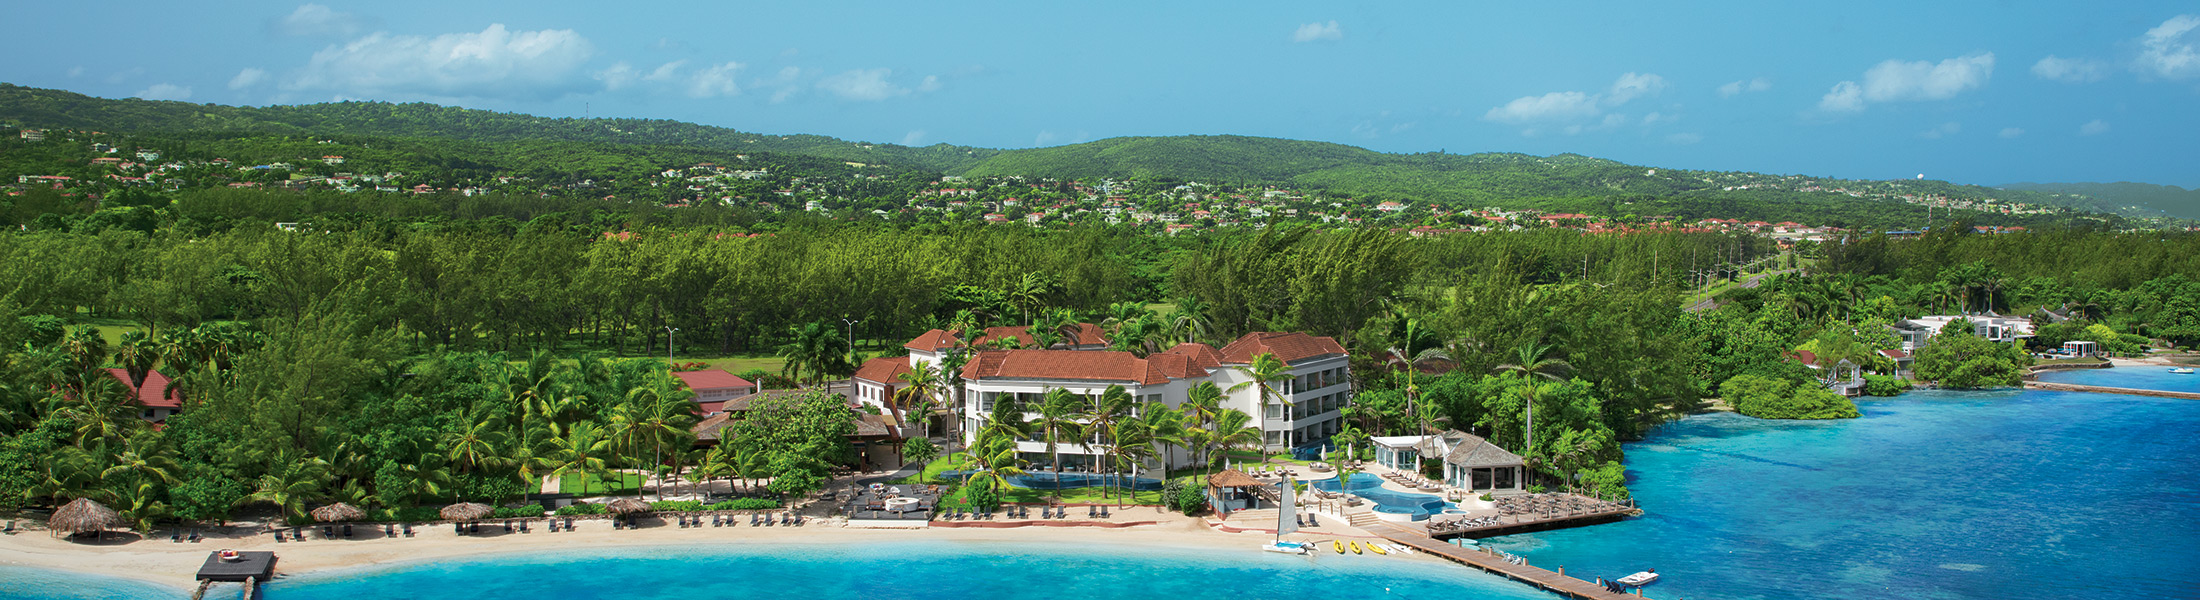 Aerial view of Zoetry Montego Bay